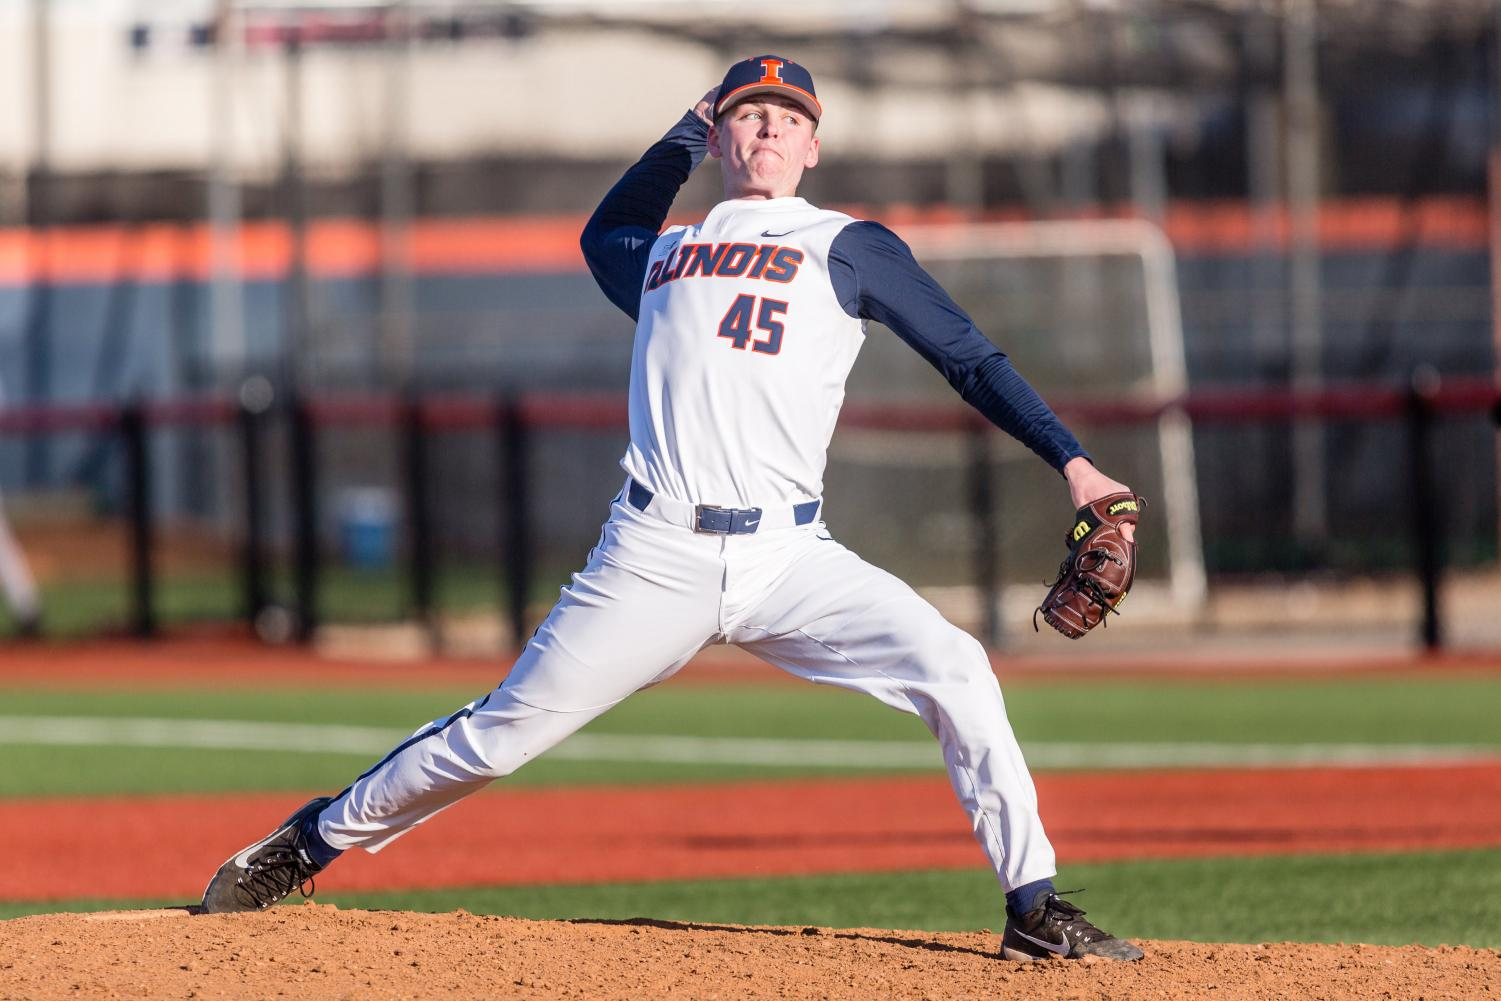 Illinois pitcher Ryan Thompson (45) delivers the pitch during the game against Milwaukee at the Illinois Field on Wednesday, March 14, 2018.